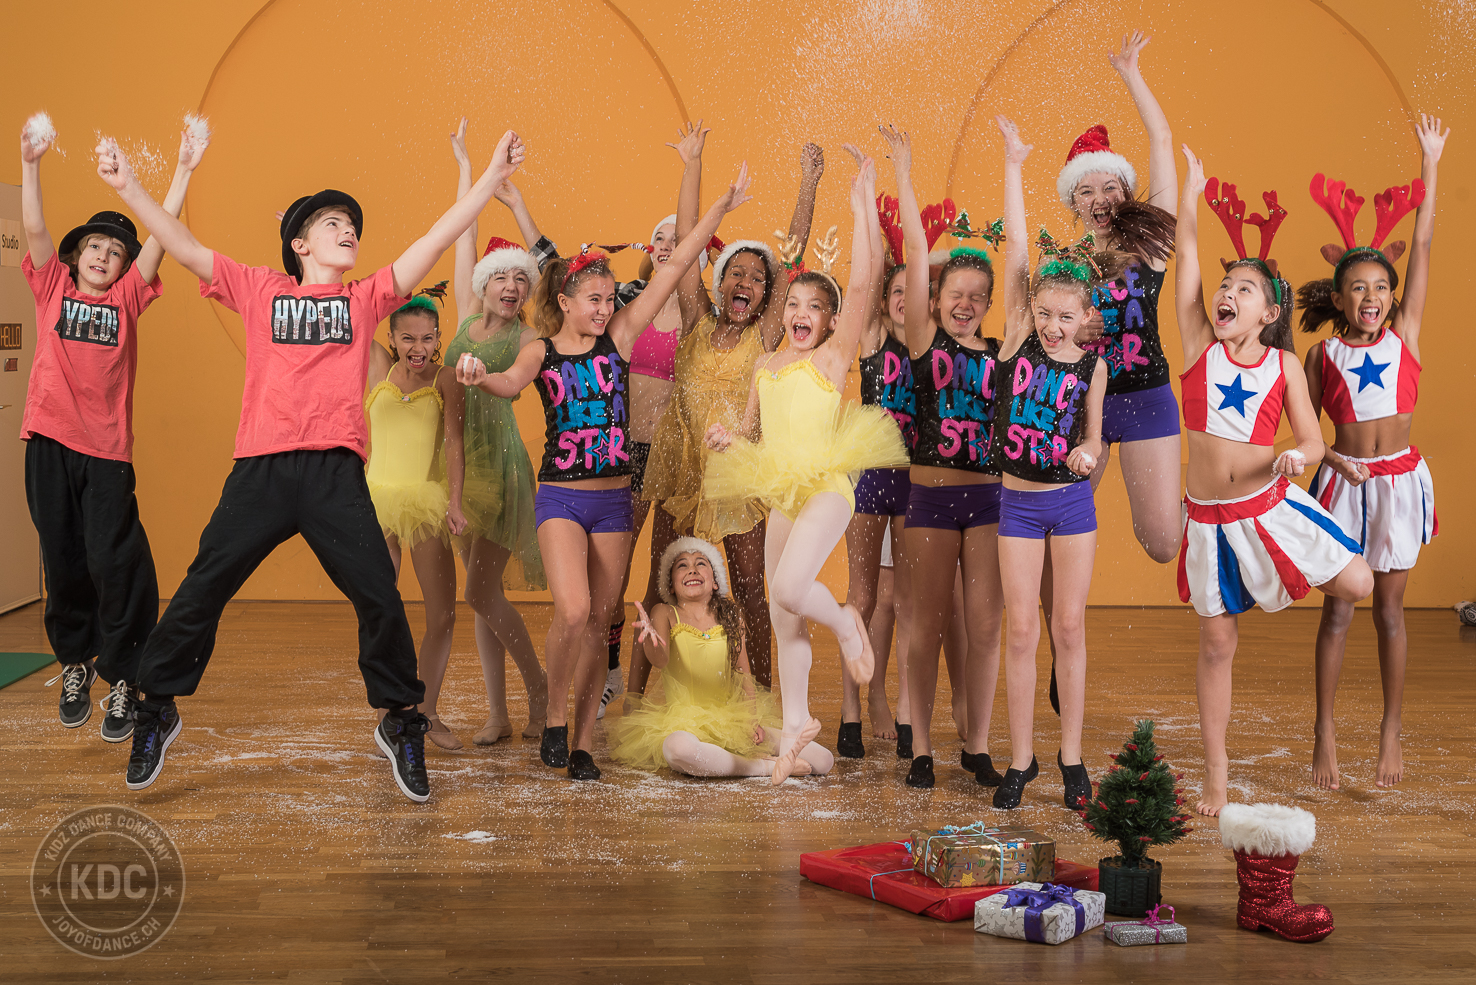 Merry Christmas from KDC by joyofdance.ch